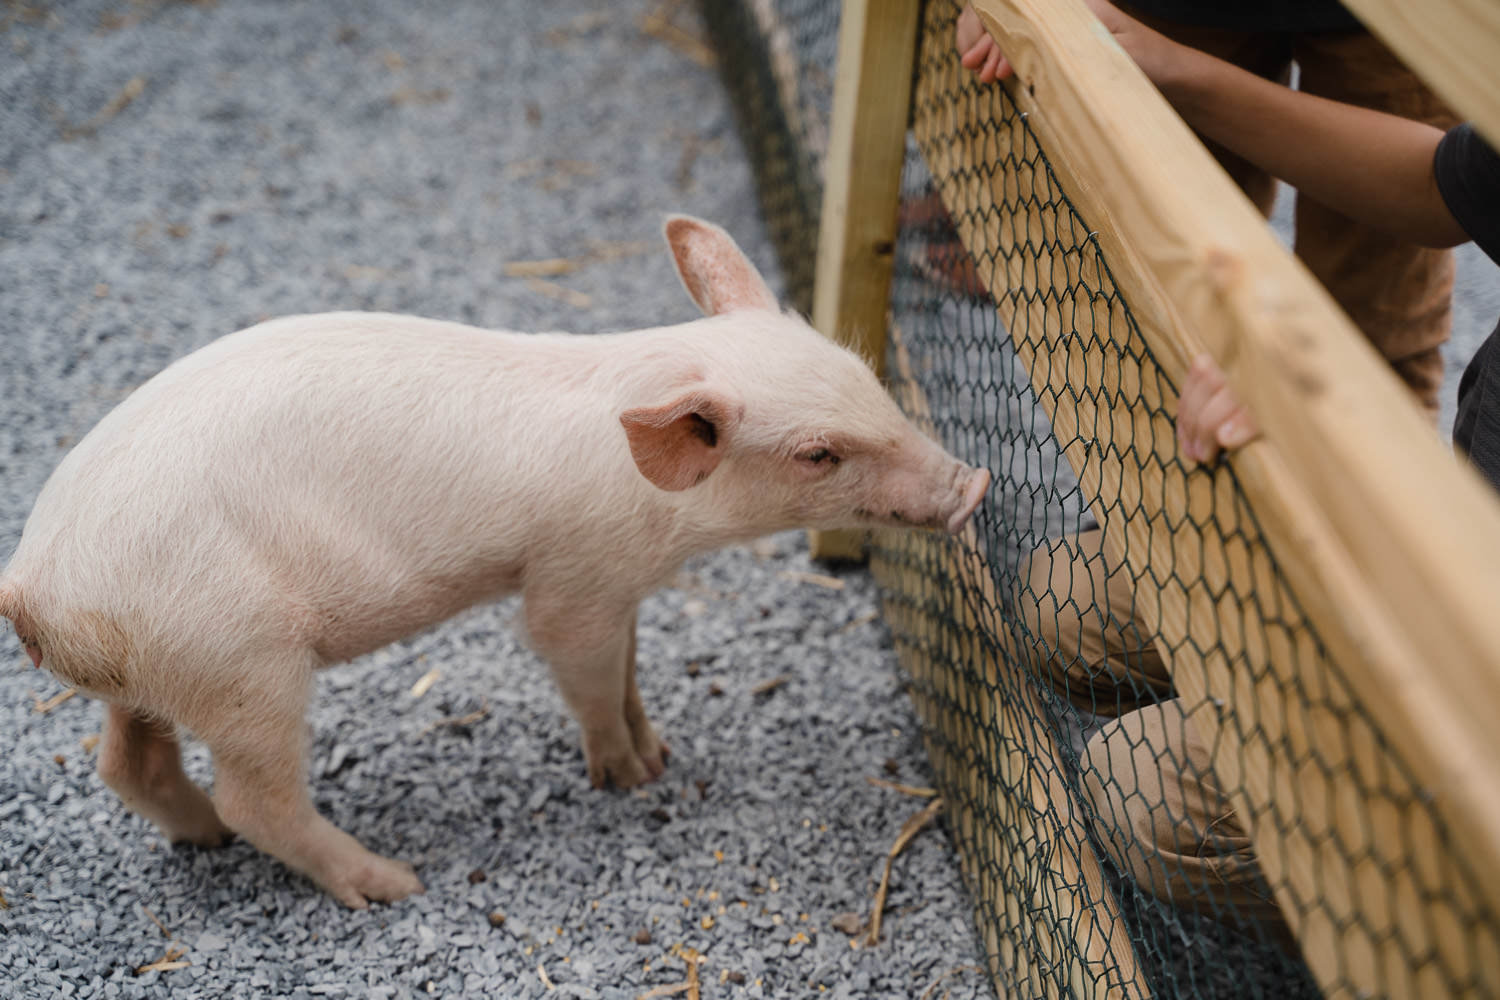 A baby pig at Hick's Nursery.